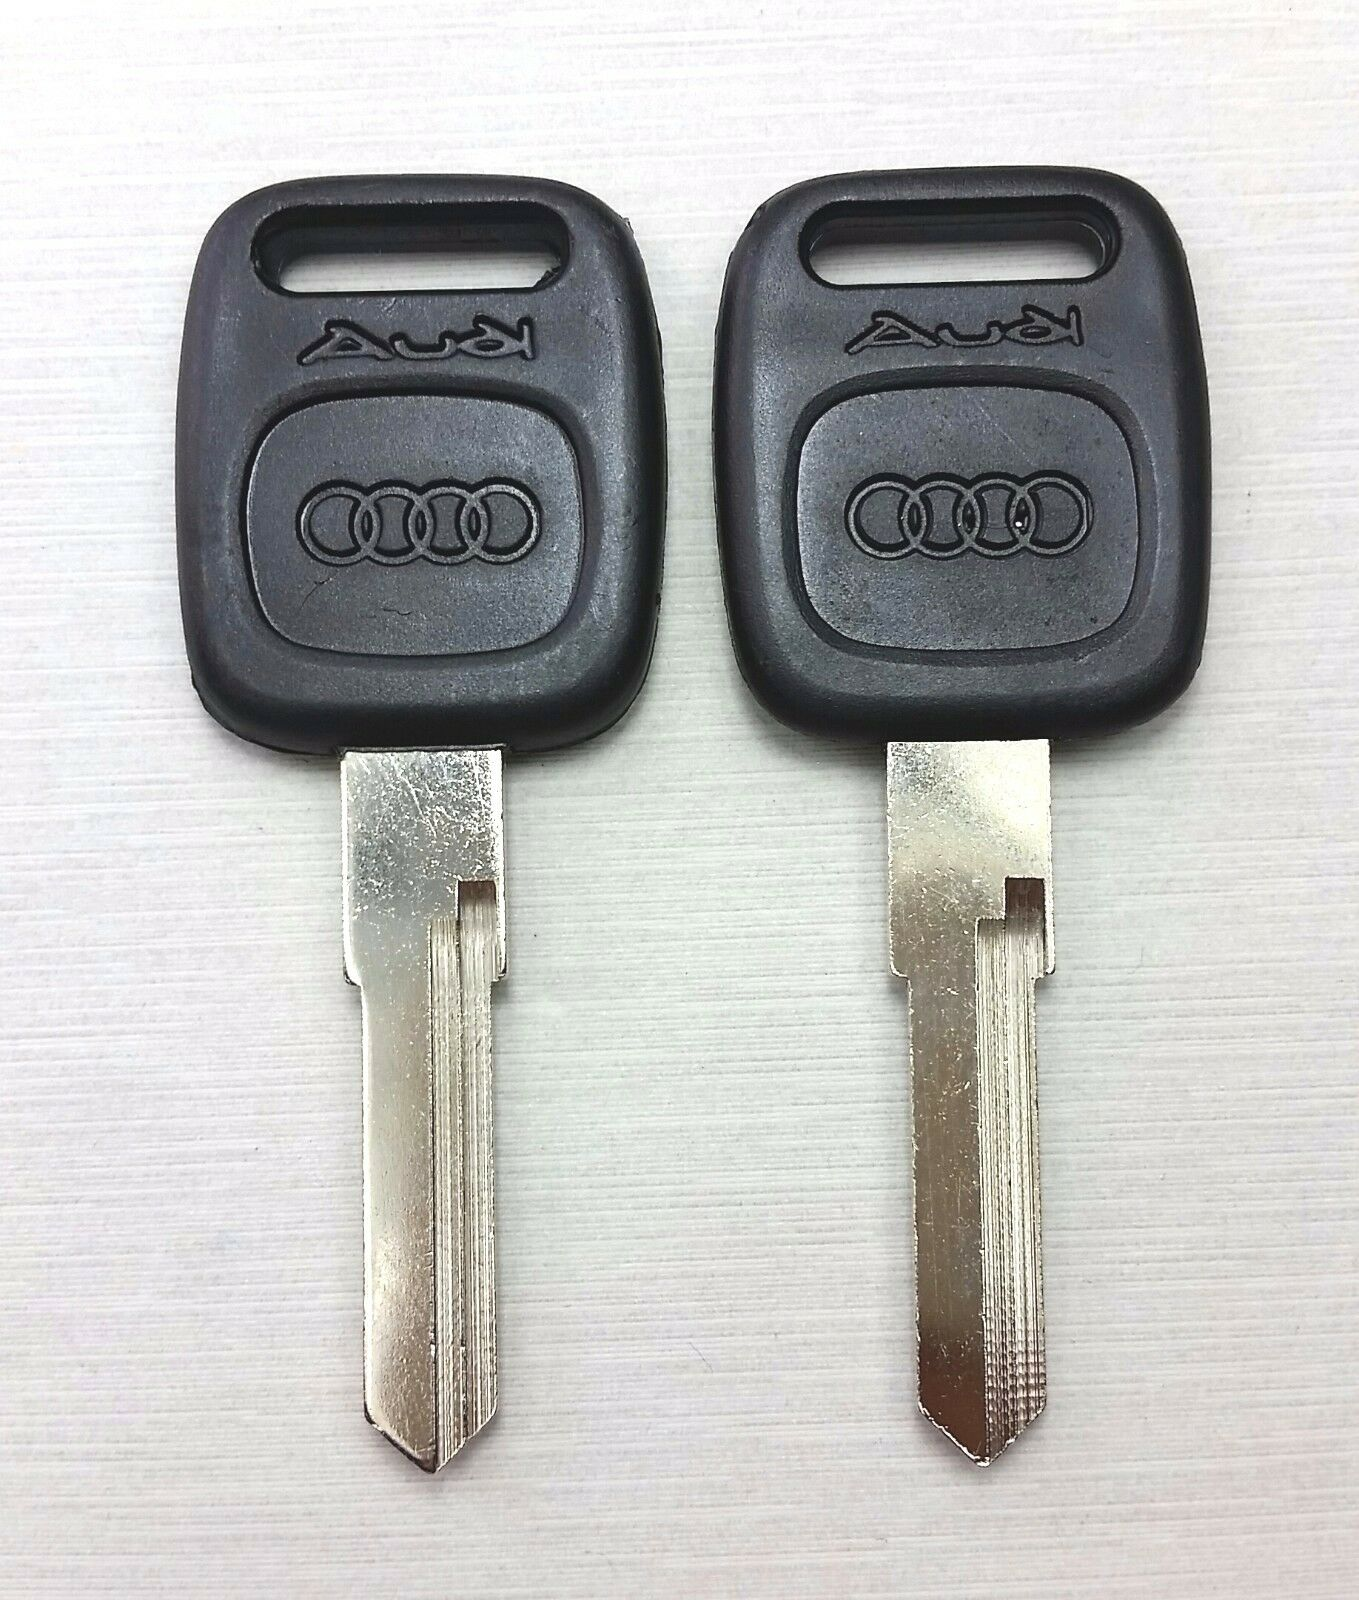 2X BLANK KEY FITFOR AUDI A4 A6 A8 Cabriolet S4 TT 80 90